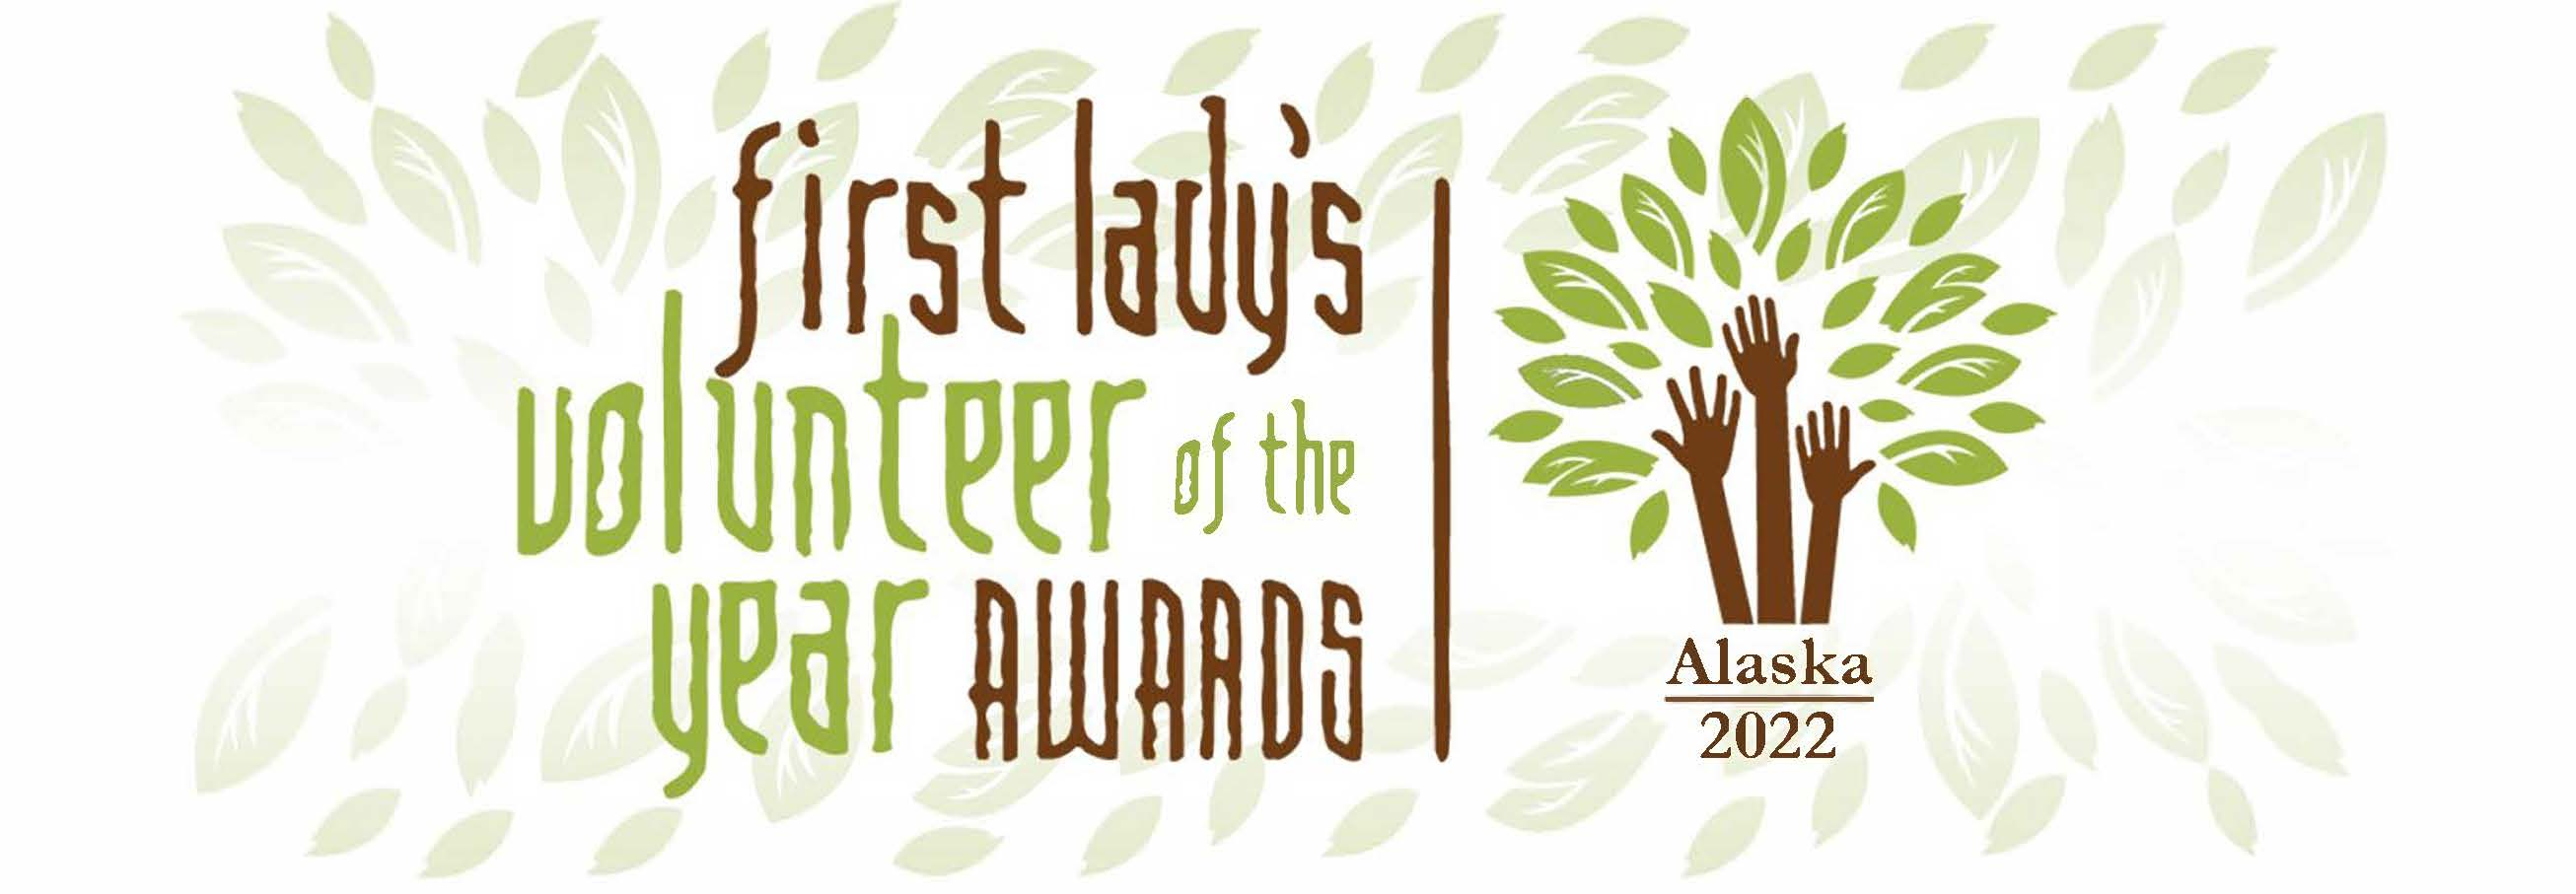 First Lady Volunteer of the Year Awards 2020